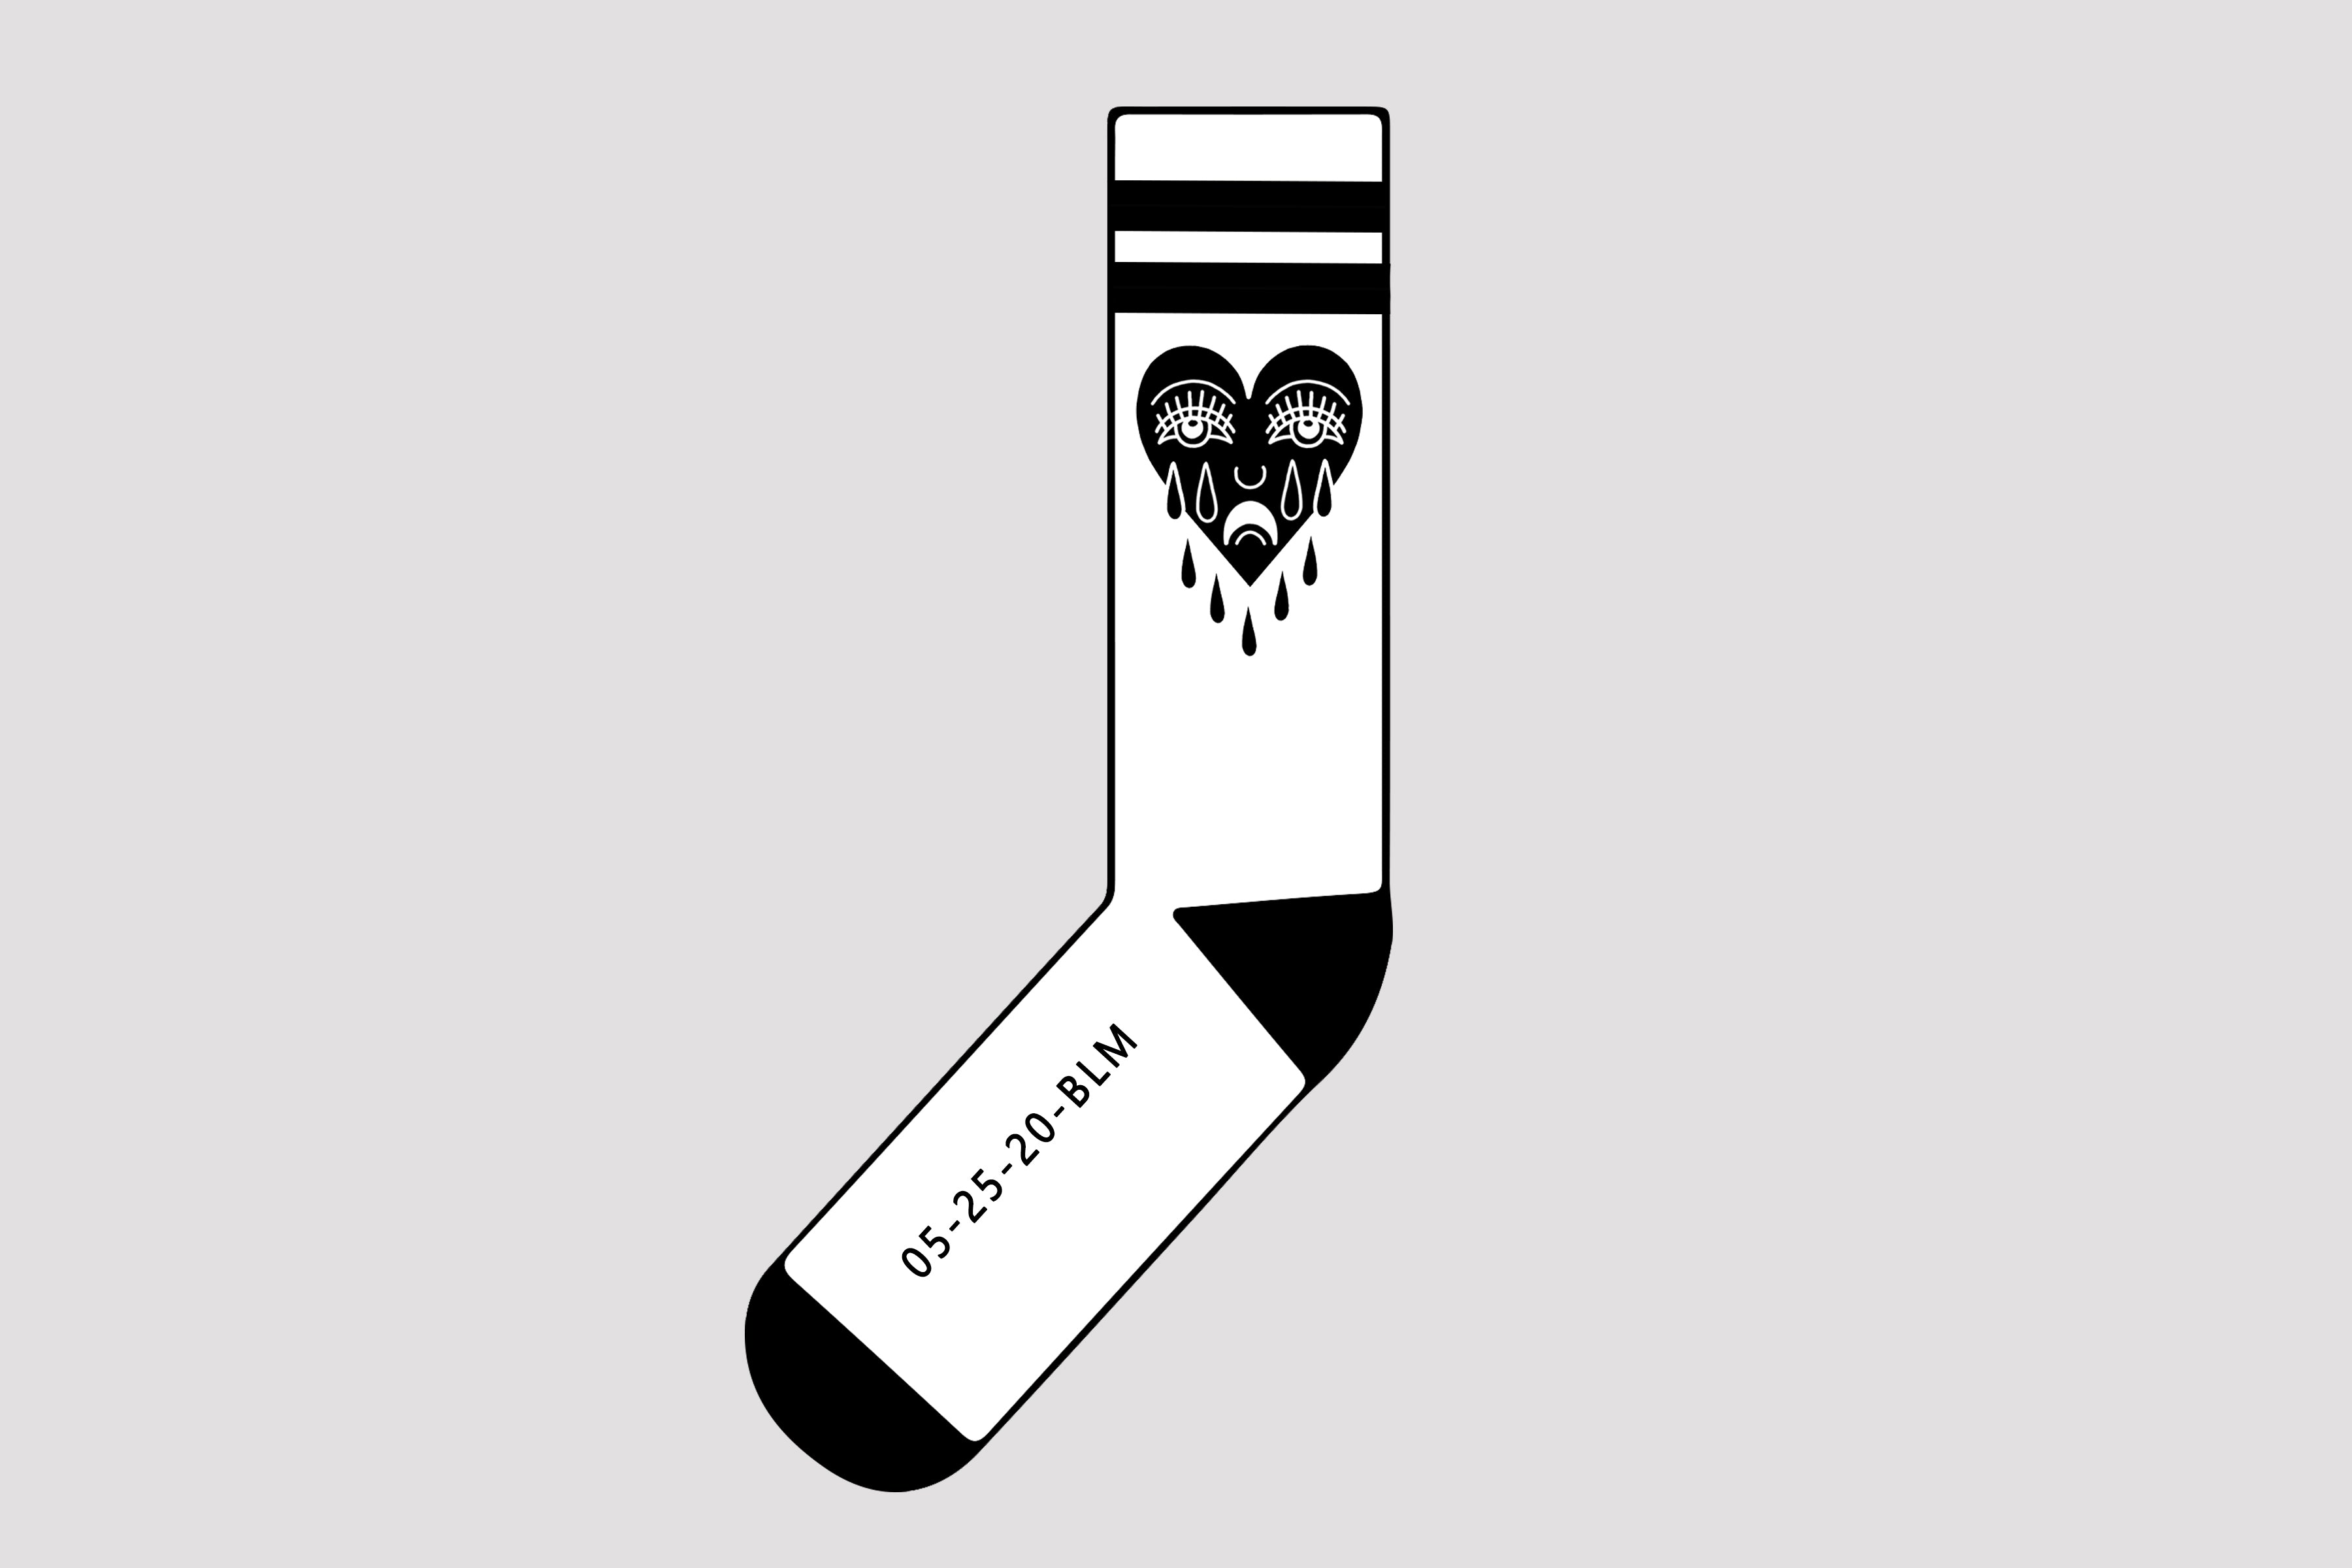 CRYING HEART Socks - In Support of BLM Aligned Organizations